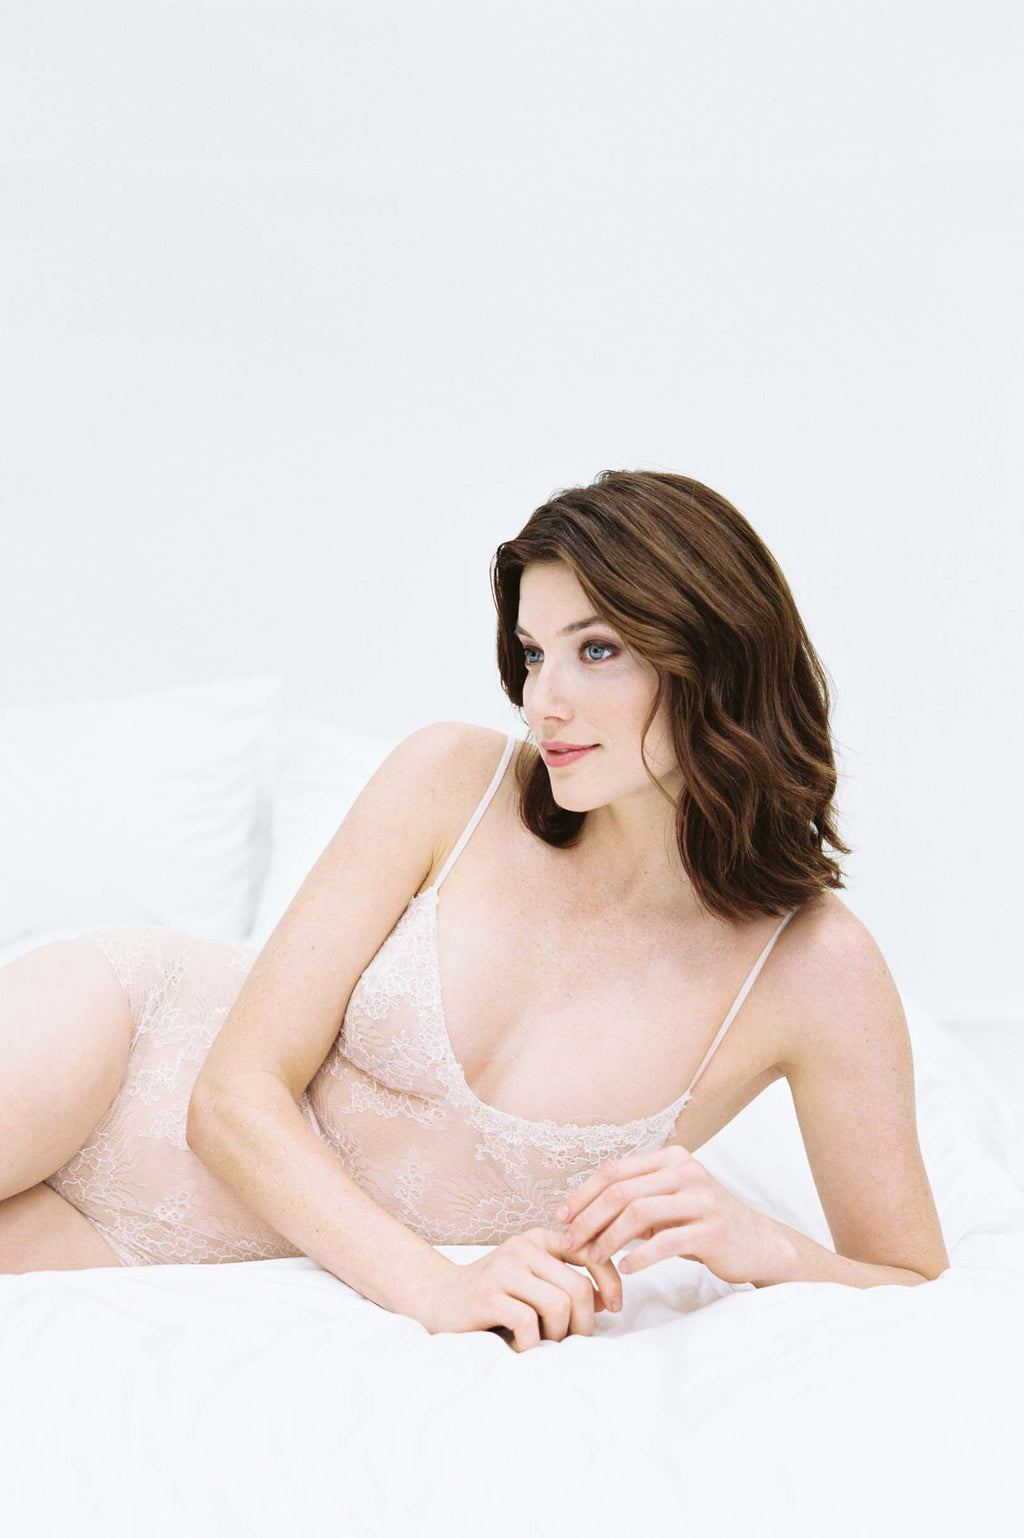 Magnolia French Chantilly Lace and tulle Bodysuit In light pink and nude